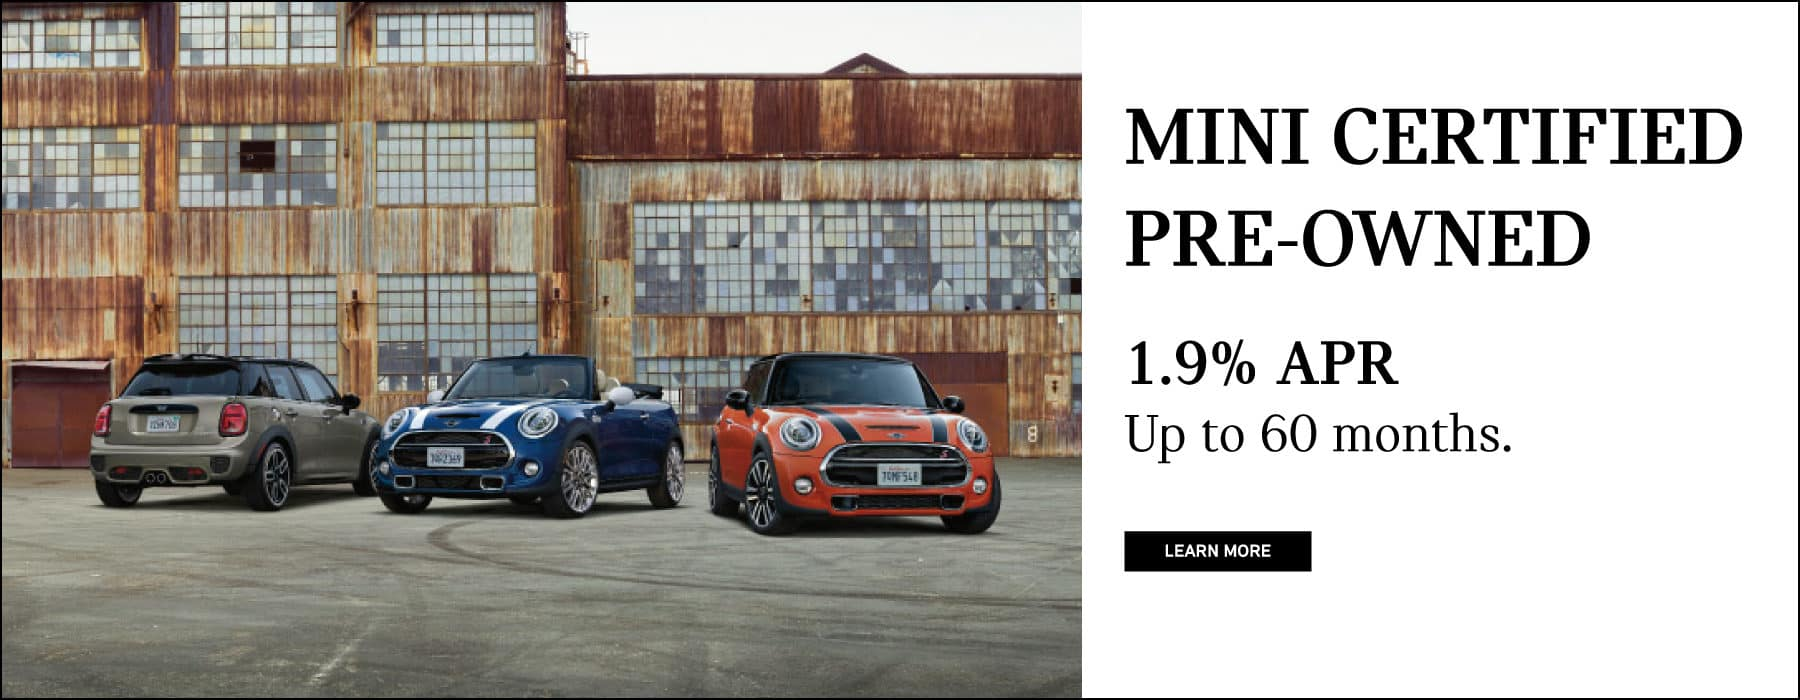 MINI Certified pre Owned 1.9% APR for up to 60 months.